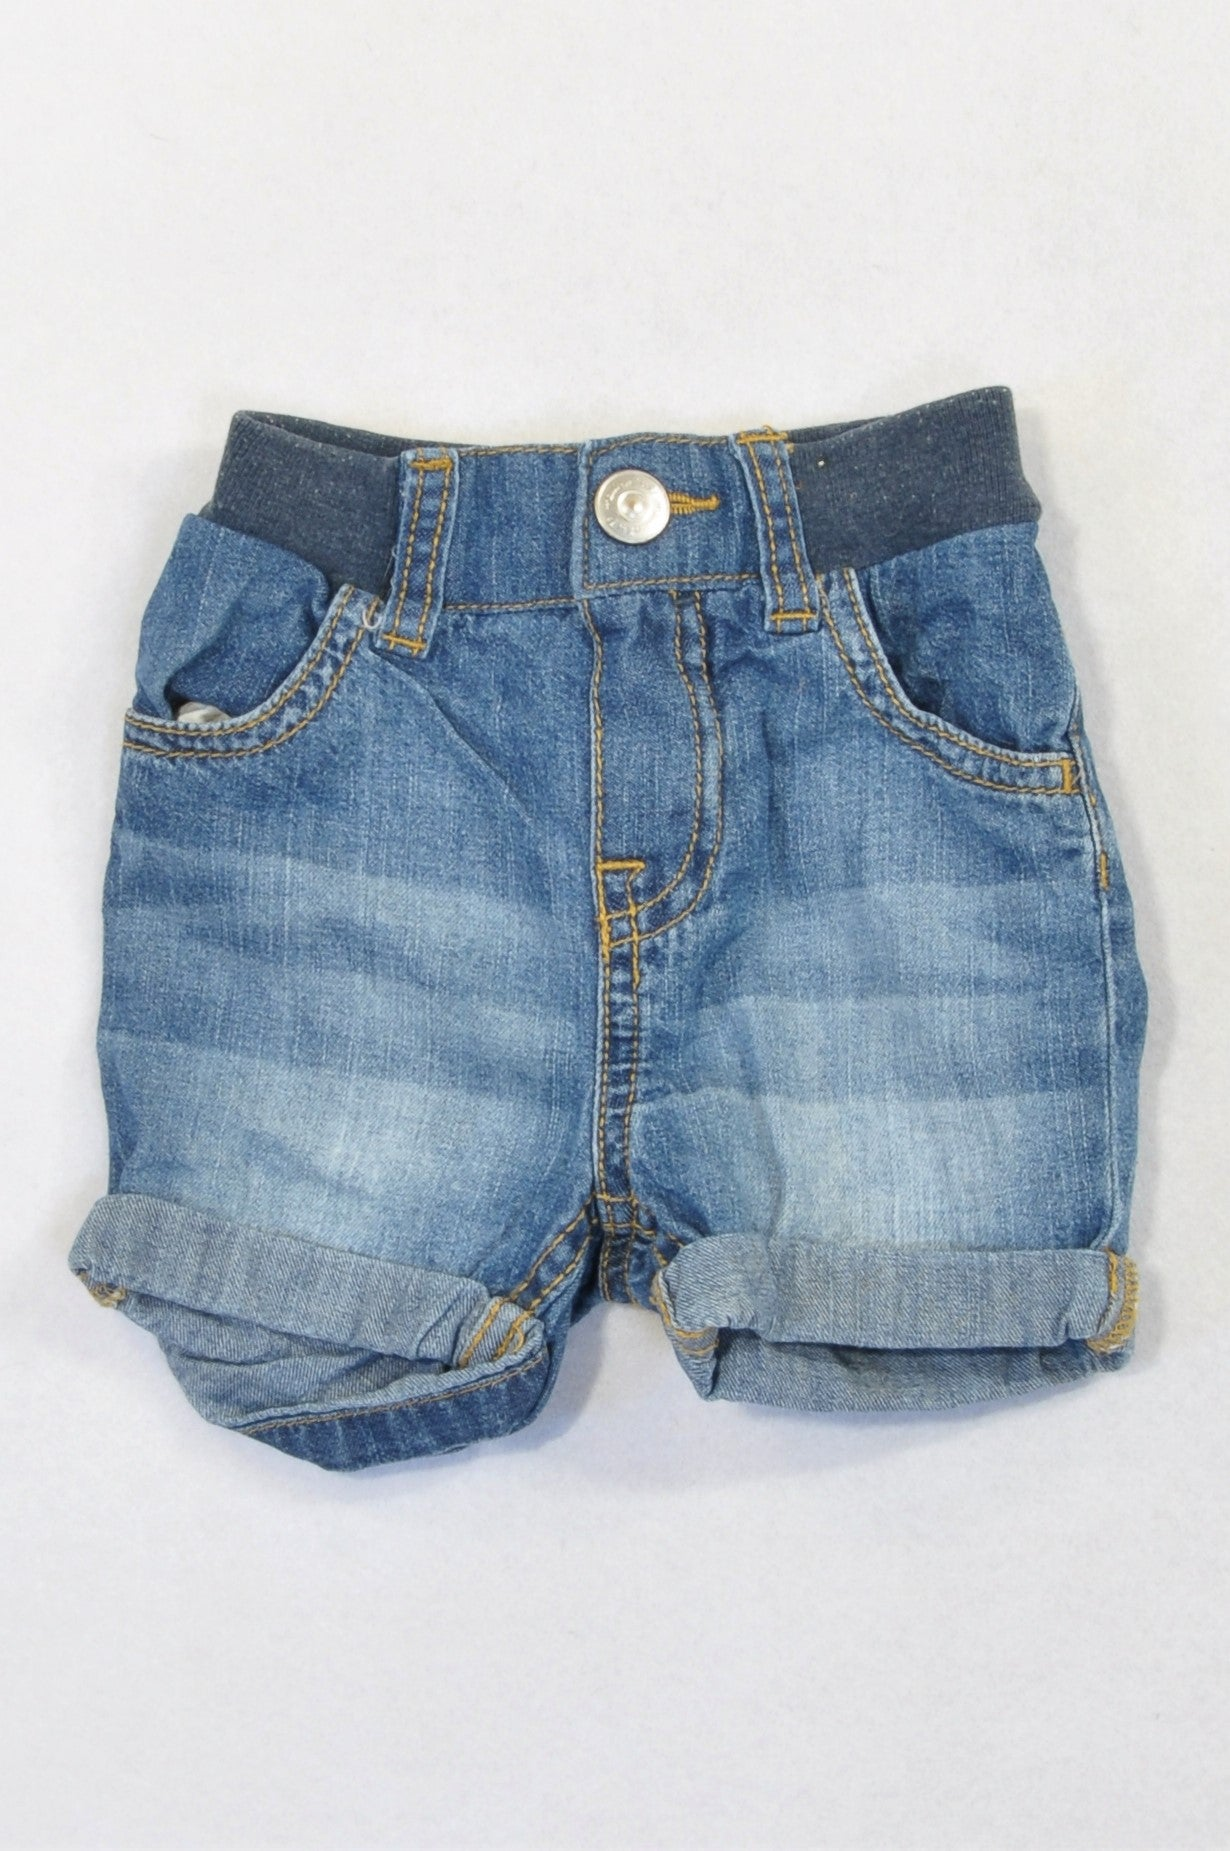 H&M Denim Banded Roll Up Shorts Unisex 4-6 months